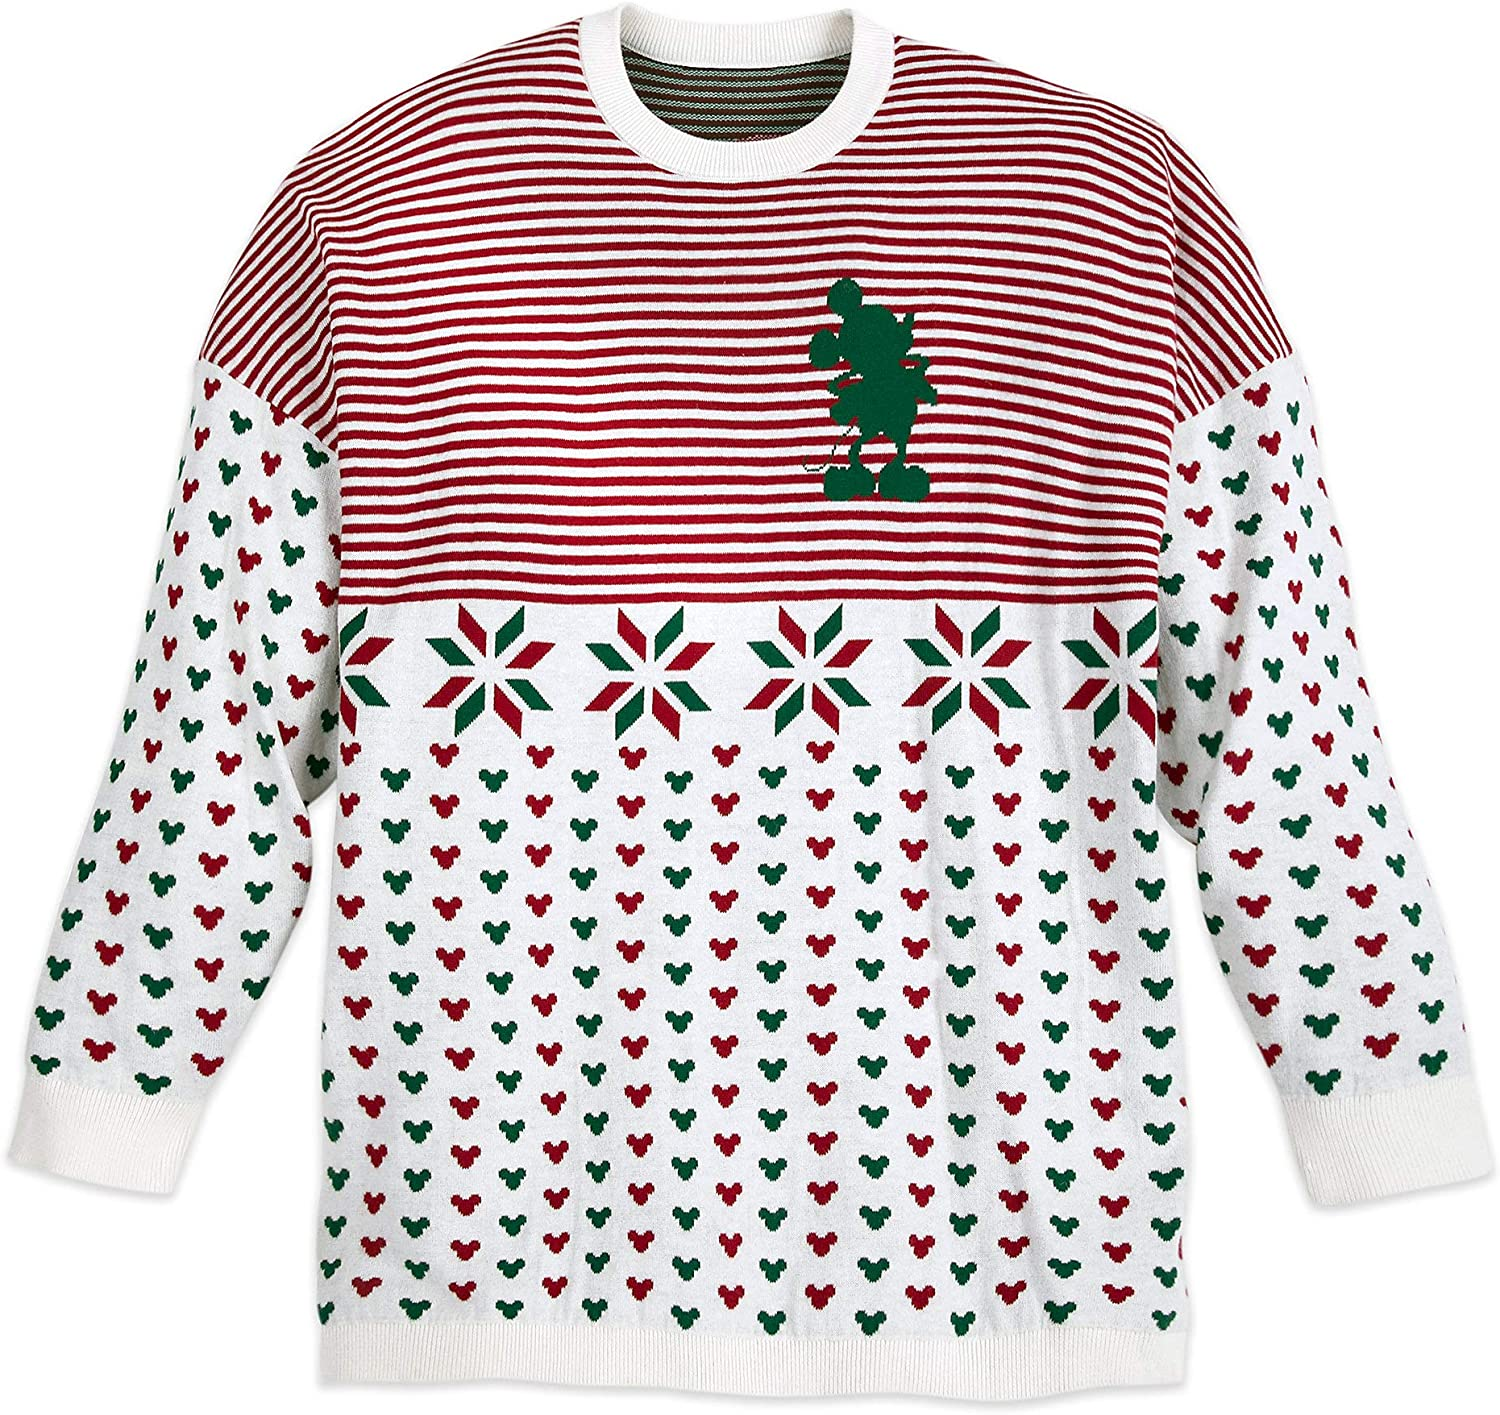 Disney Mickey Mouse Holiday Spirit Jersey Sweater for Adults